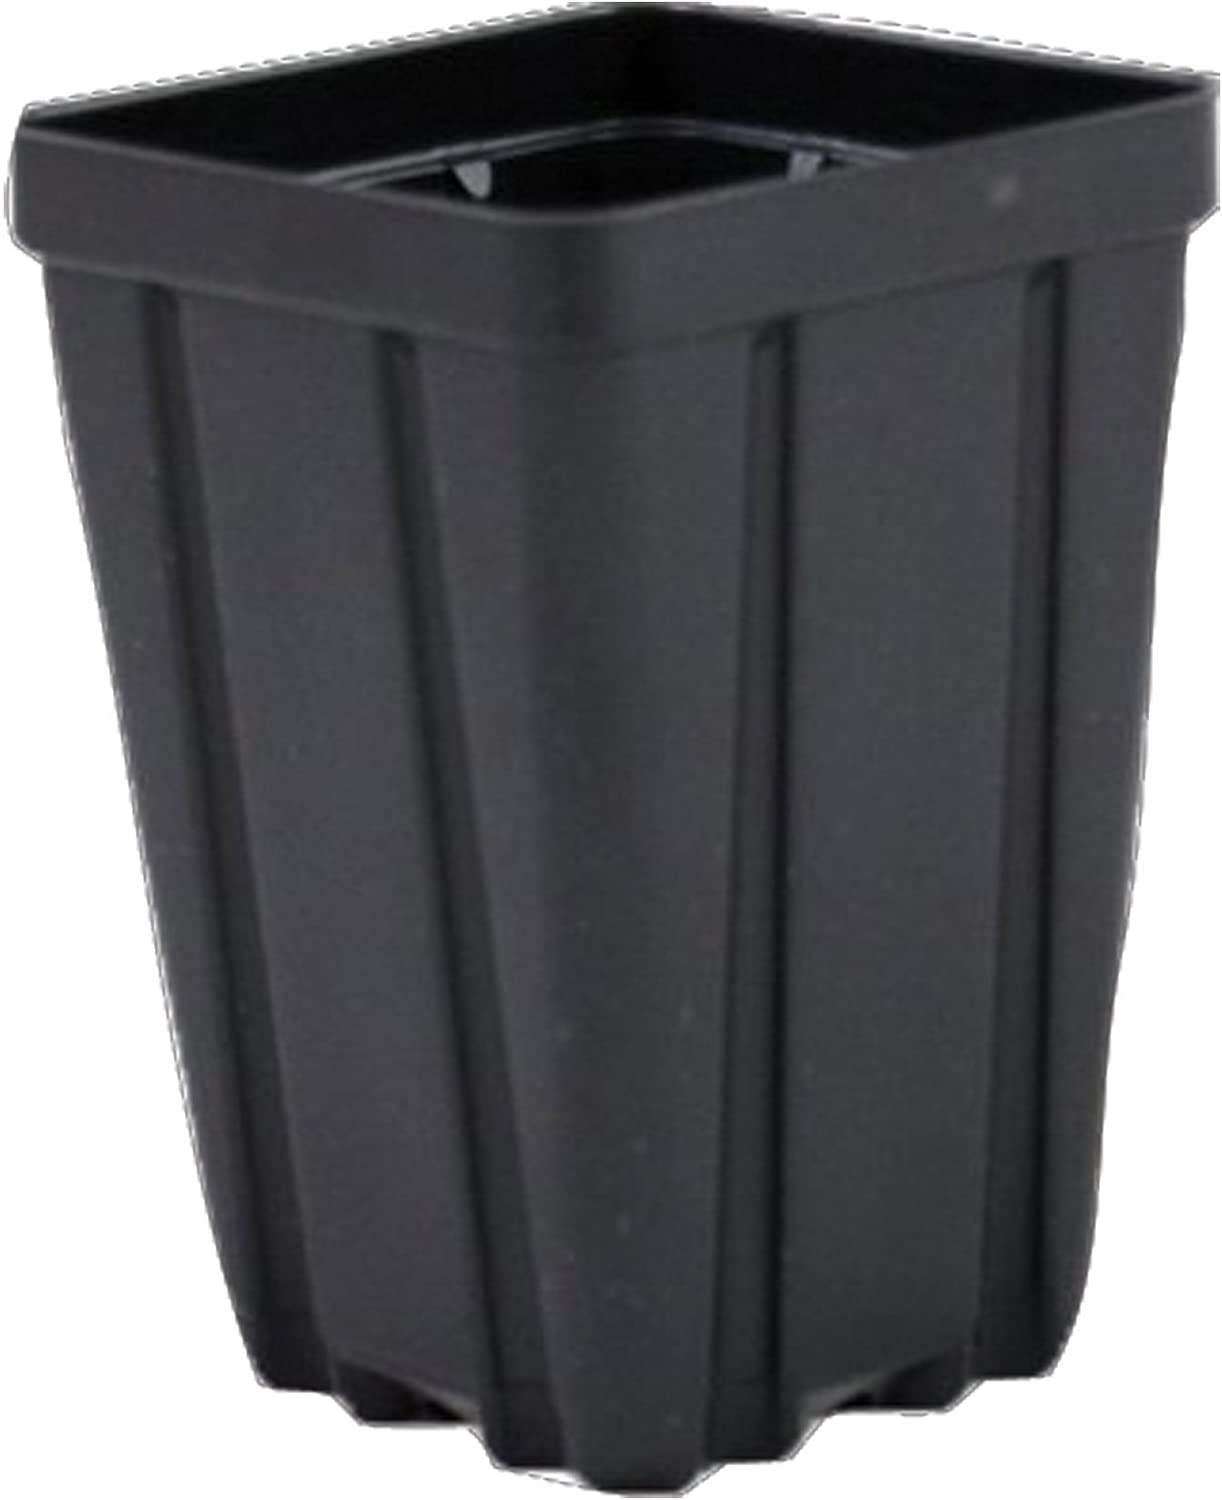 Square Greenhouse Pots 3.5 inch x 5 inch- Black – Plastic – Deep – Case of 450 by Growers Solution